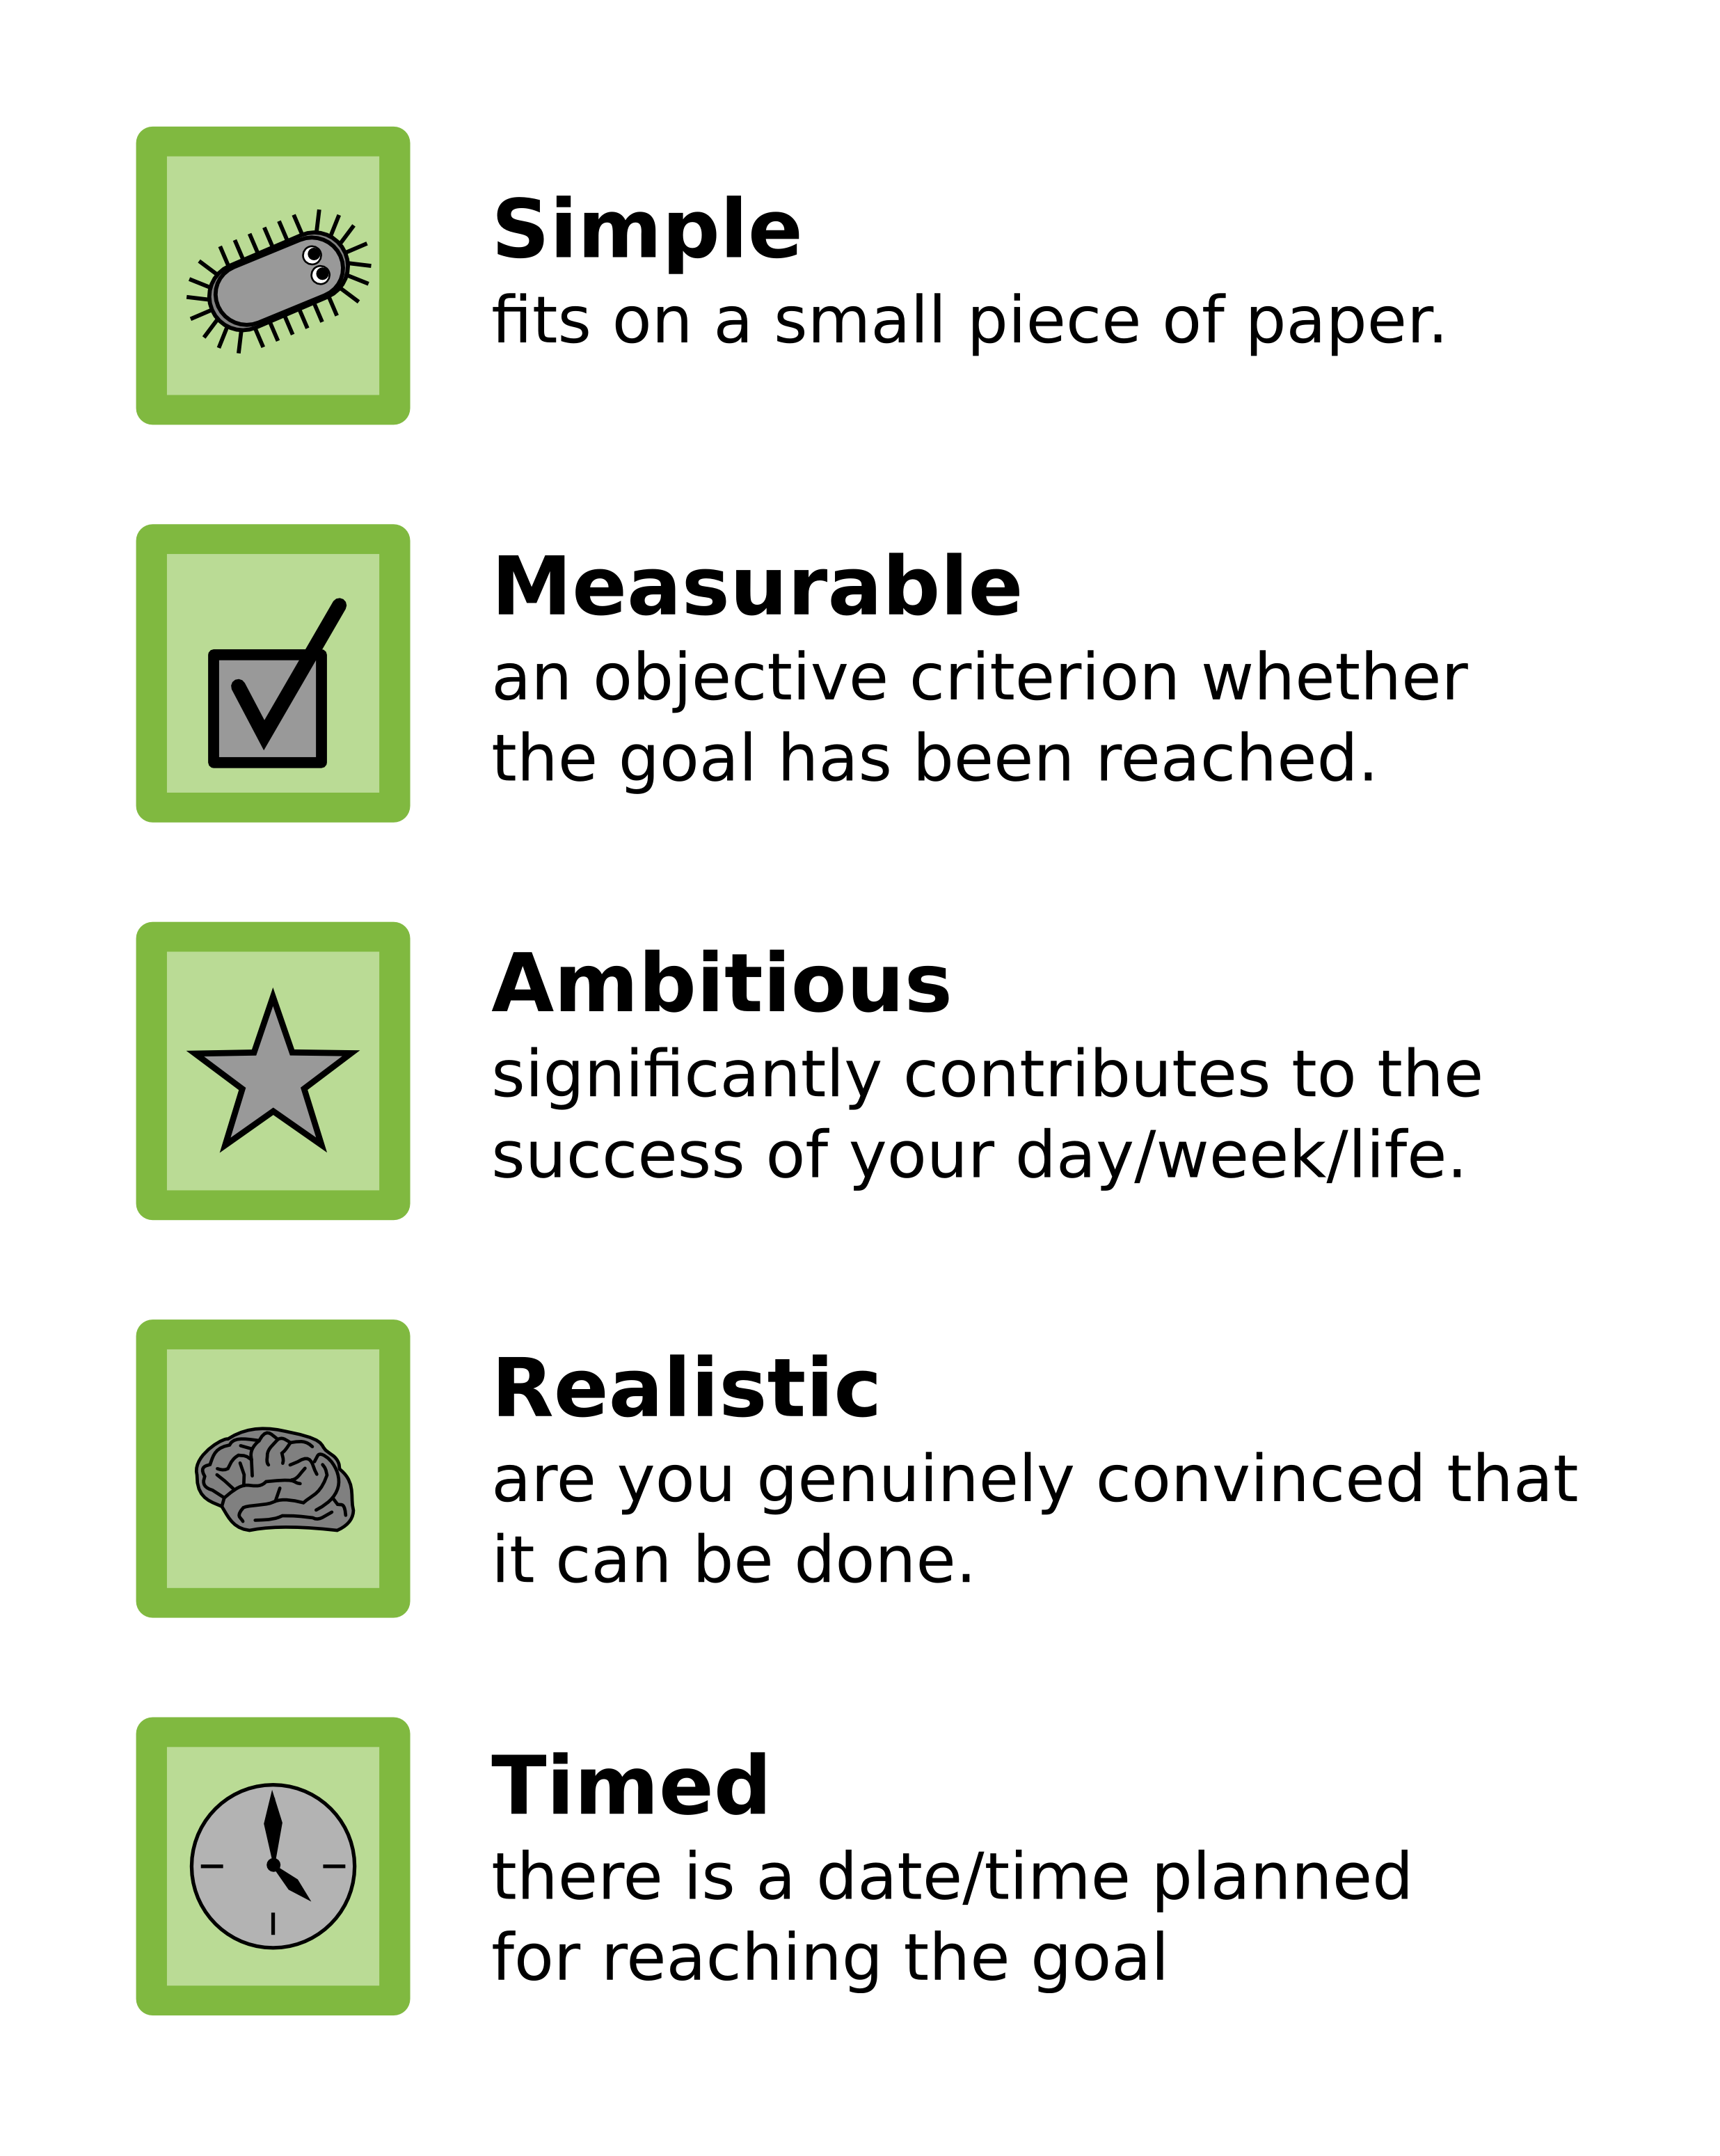 SMART Goals u00b7 Time Management for Scientists